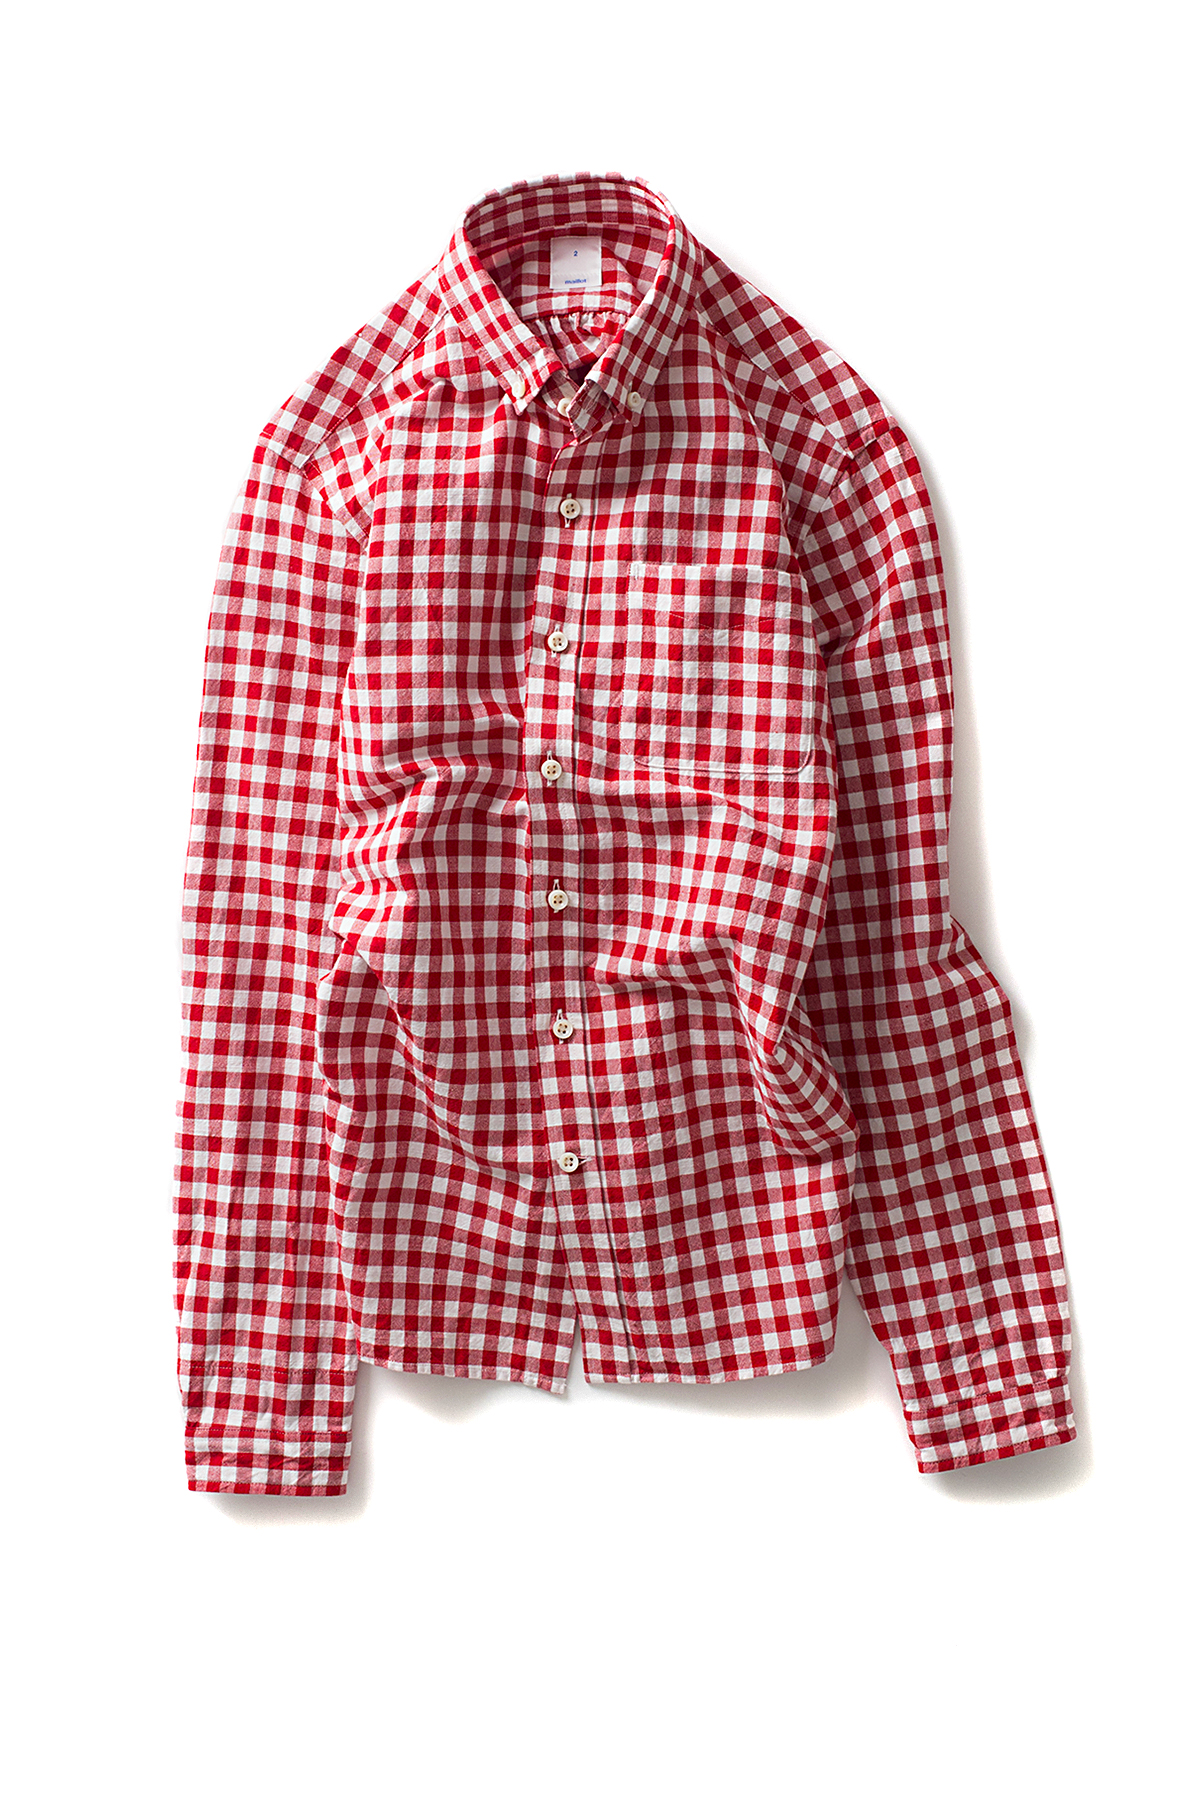 maillot : Sunset Big Gingham BD Shirts (Big Red x White)